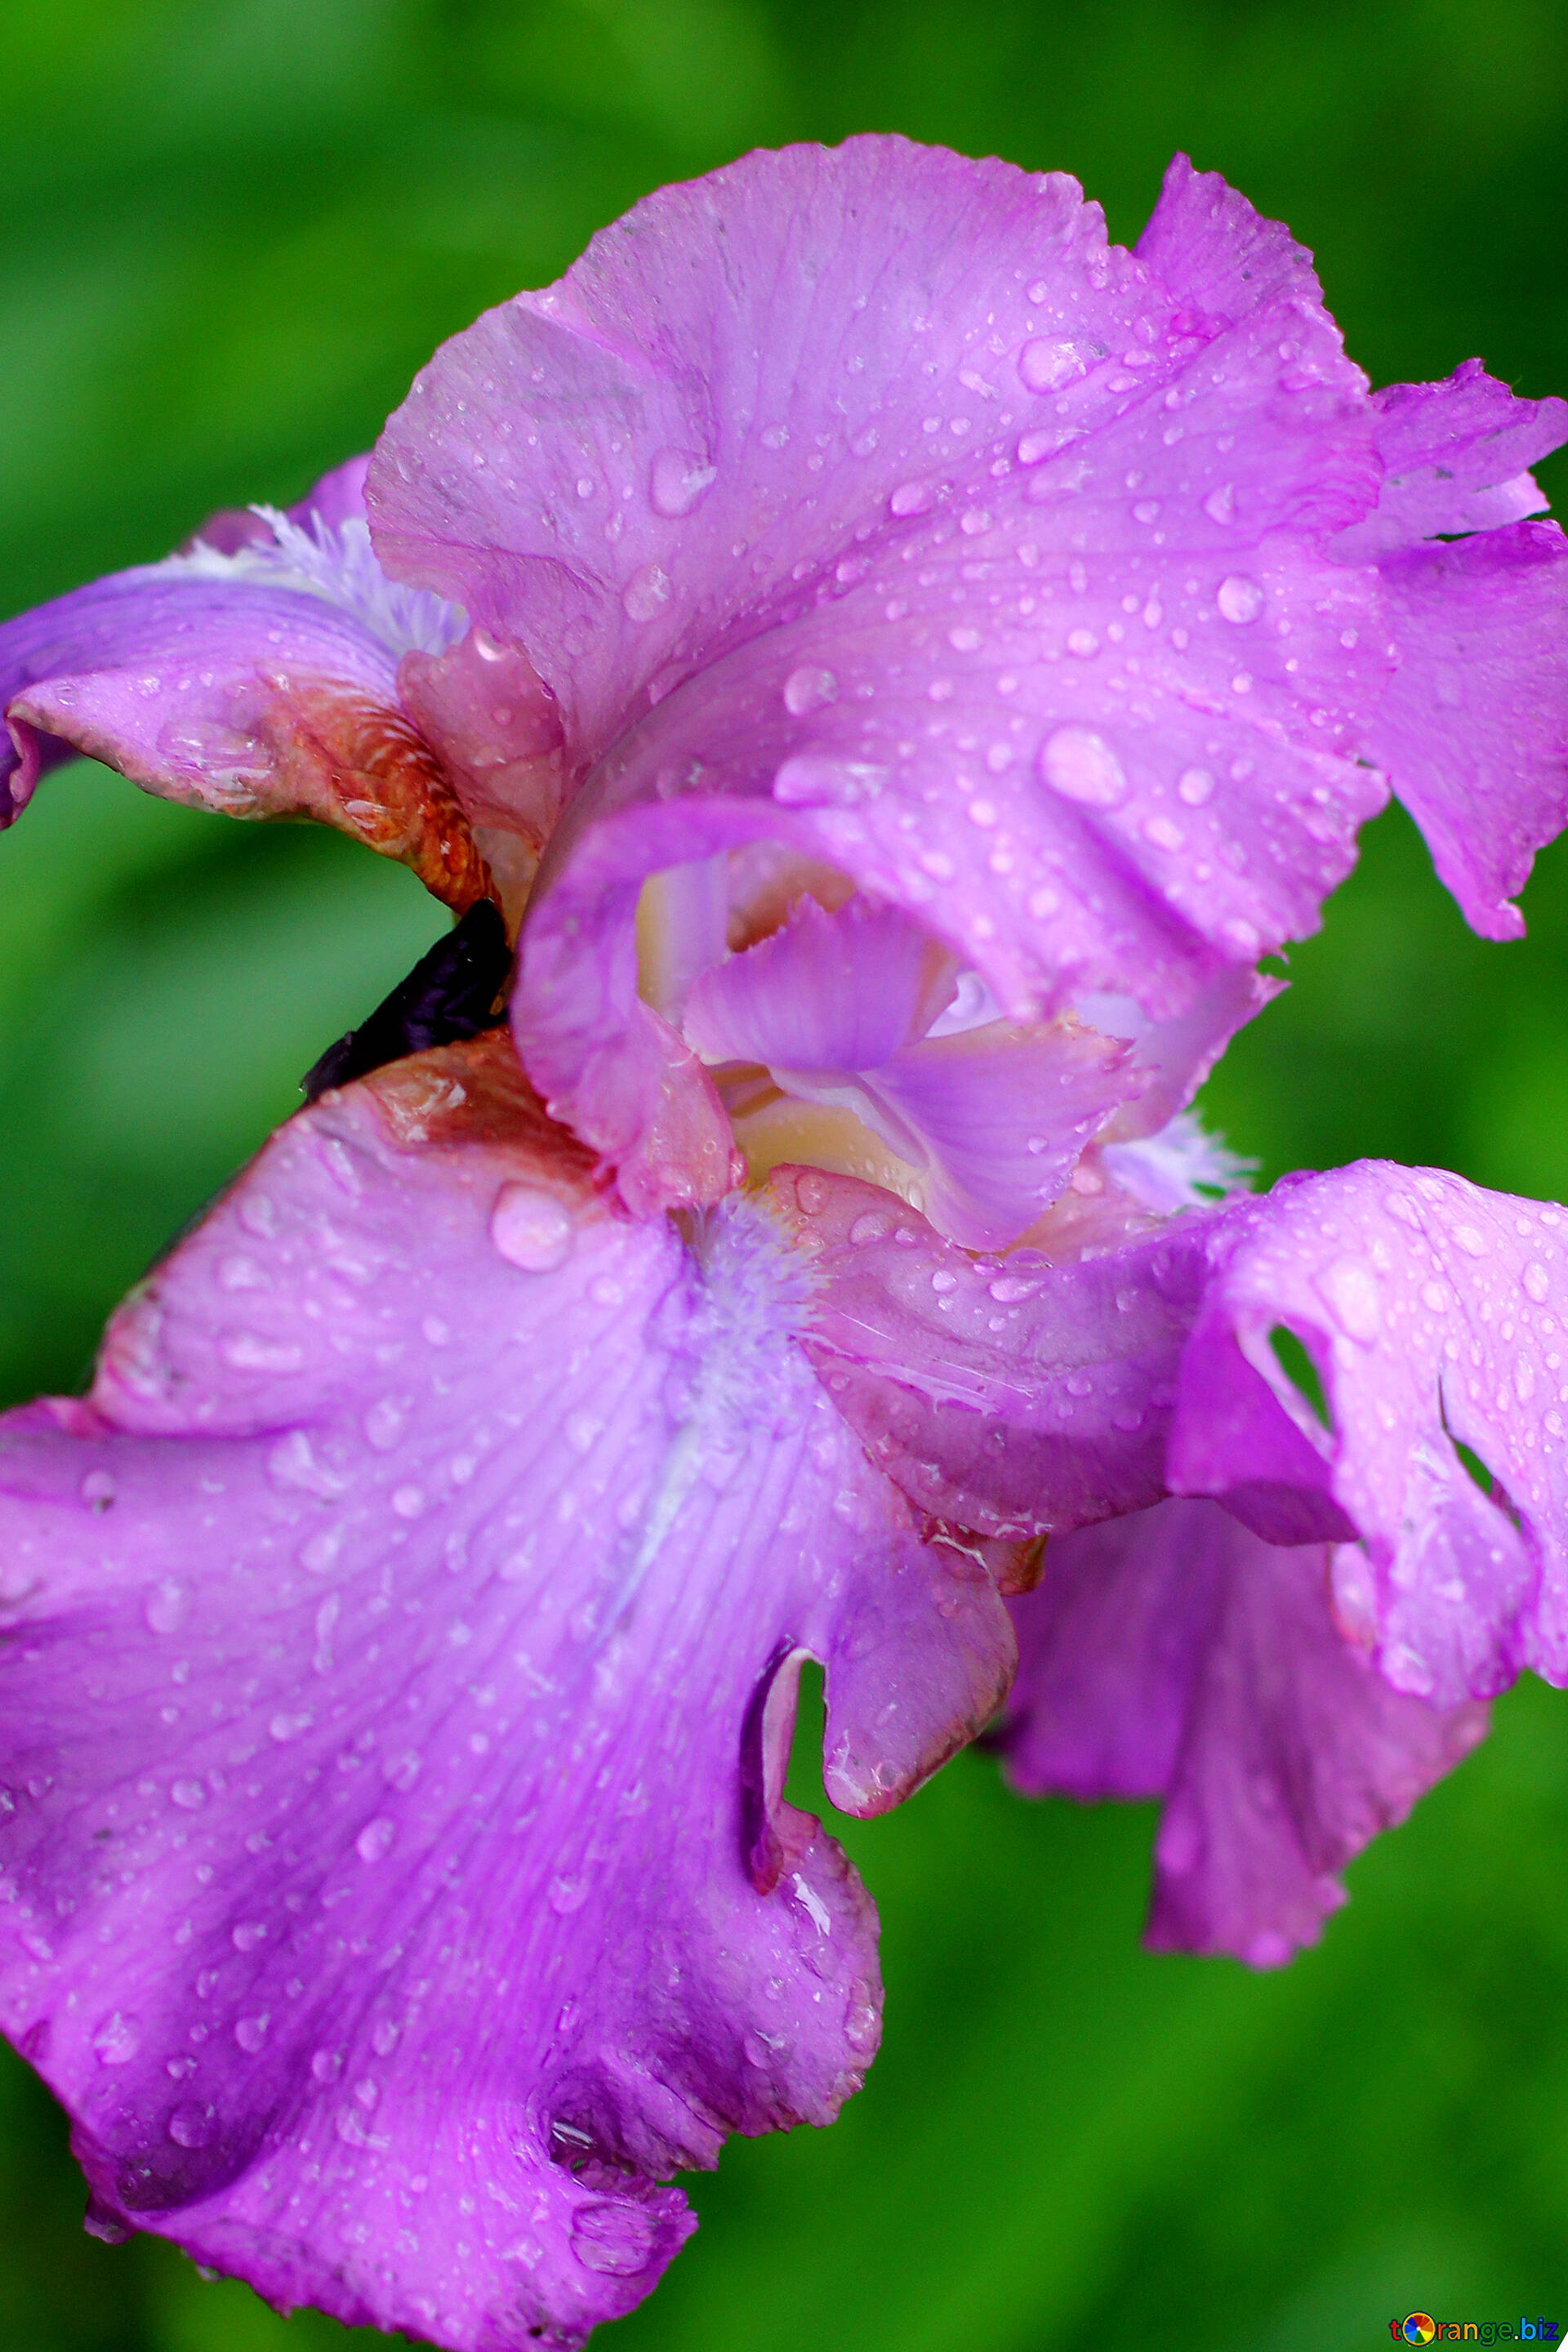 Flowers with drops of dew flower of iris with large drops of dew download free image flower of iris with large drops of dew in hd wallpaper size 1920px izmirmasajfo